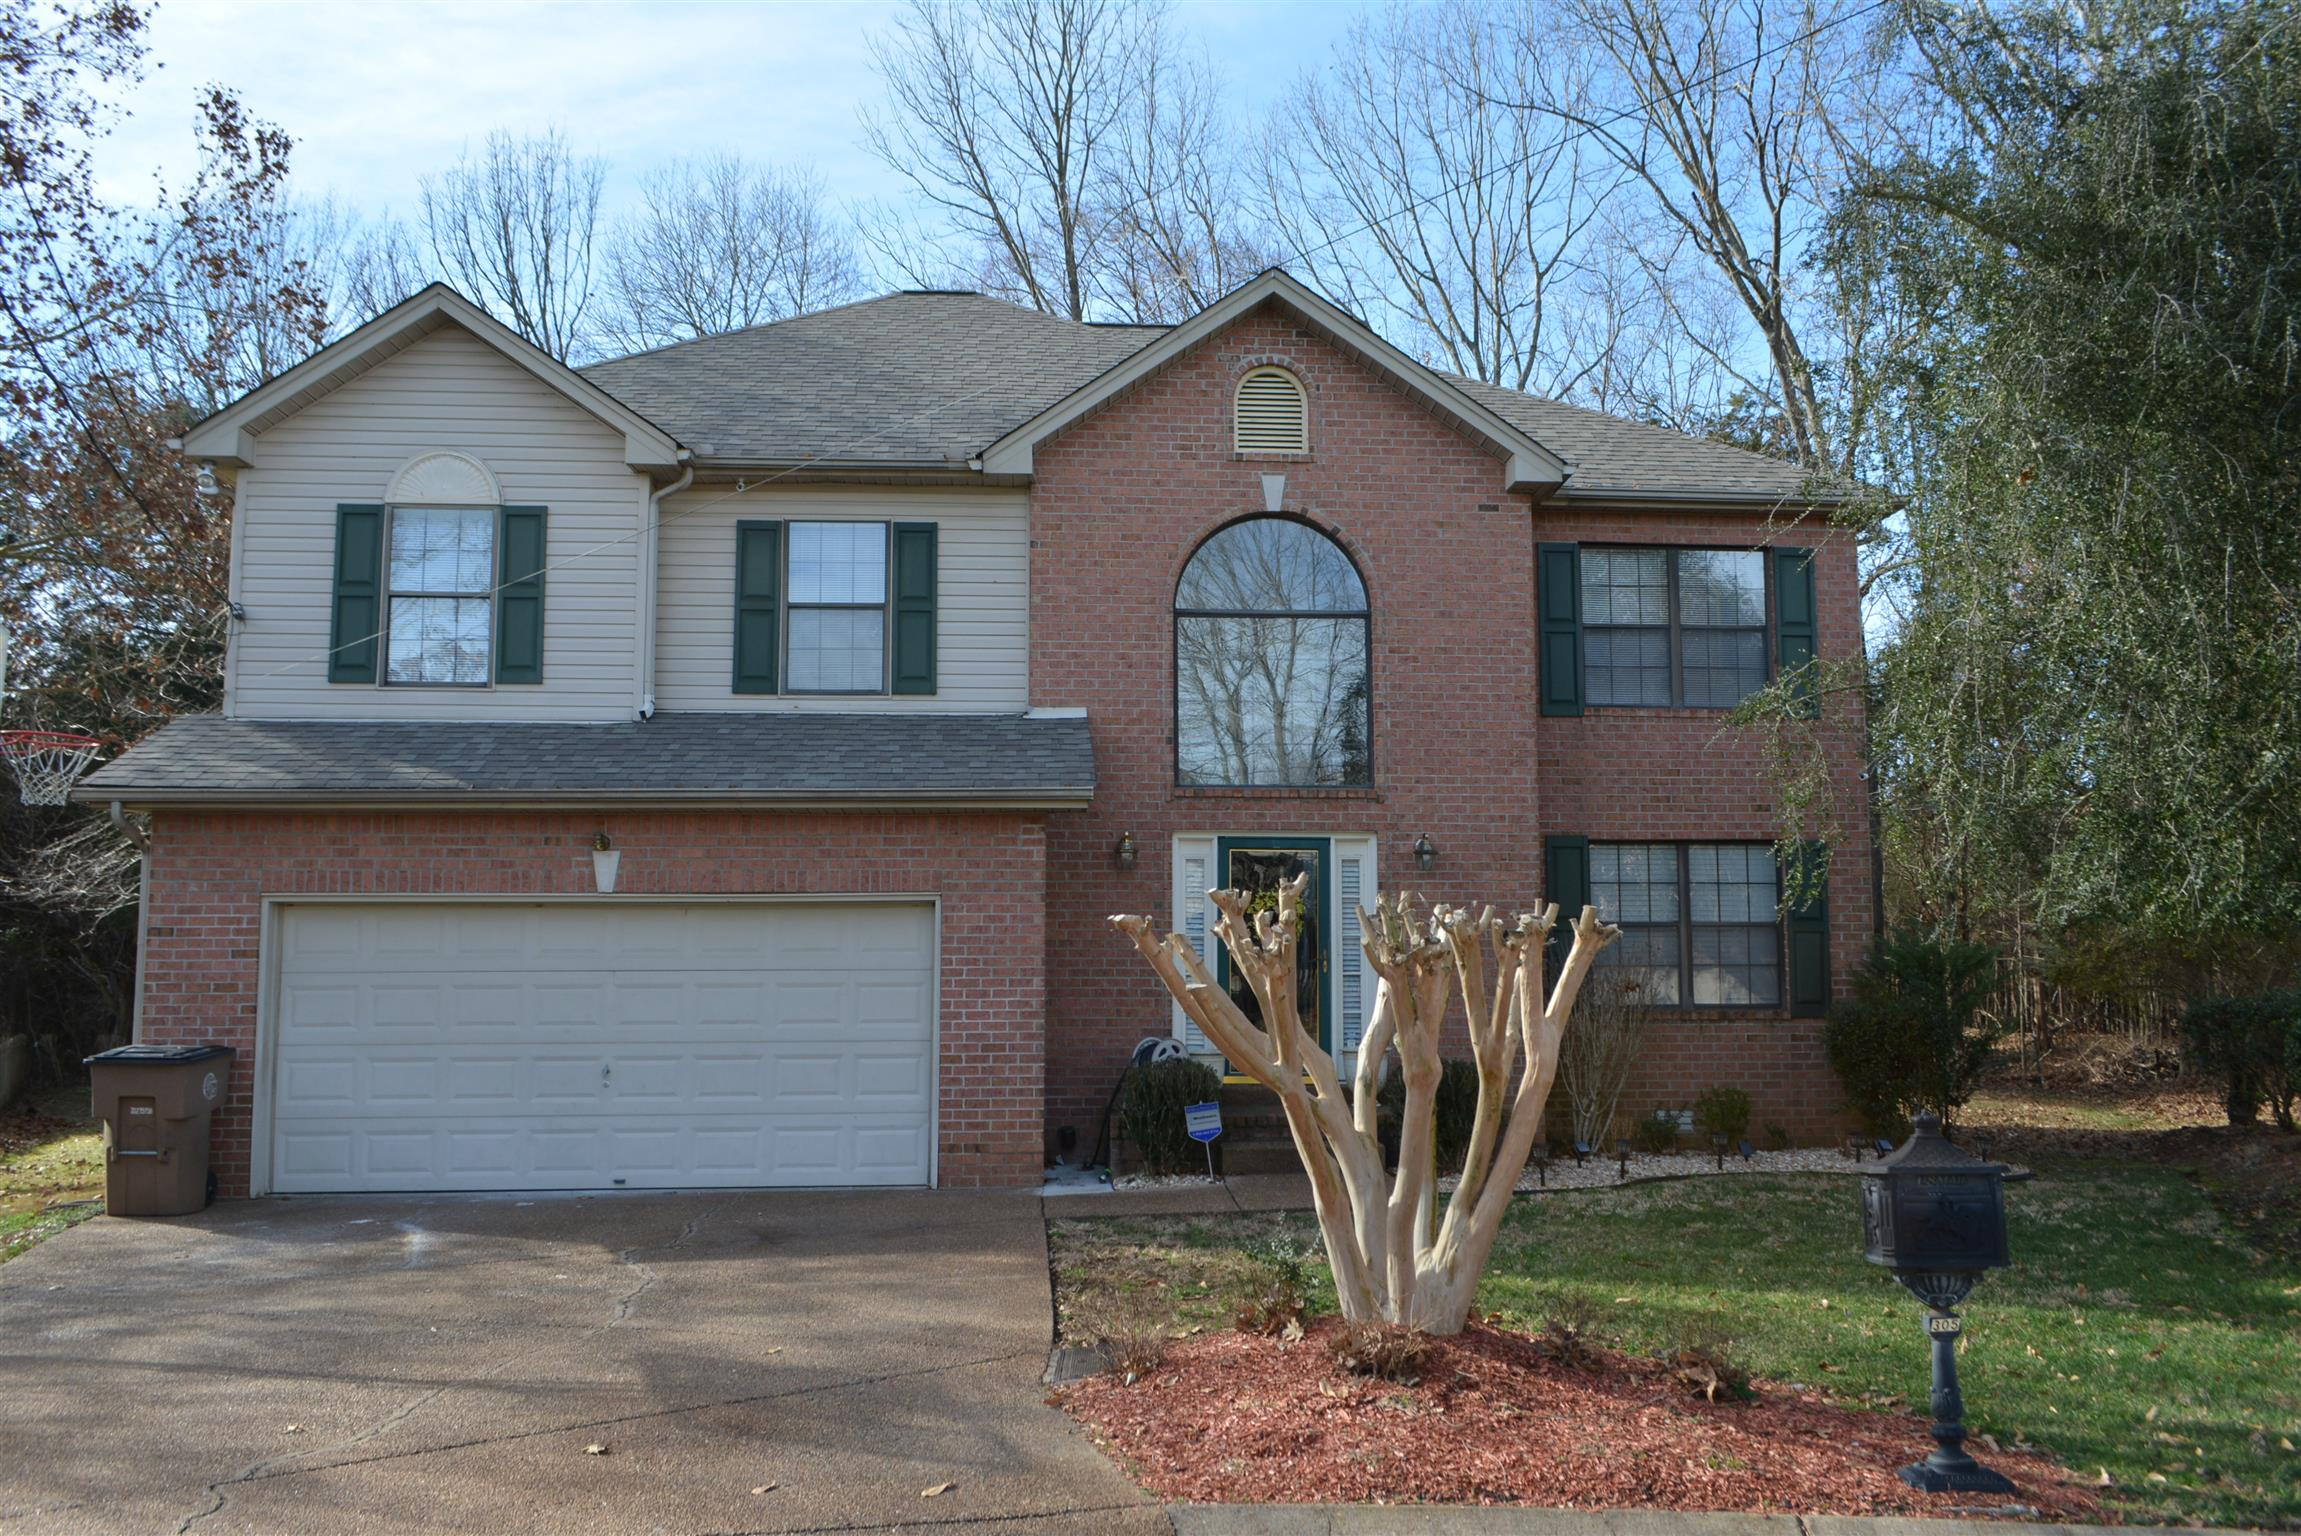 305 Wareham Ct, Nashville-Antioch in Davidson County County, TN 37013 Home for Sale